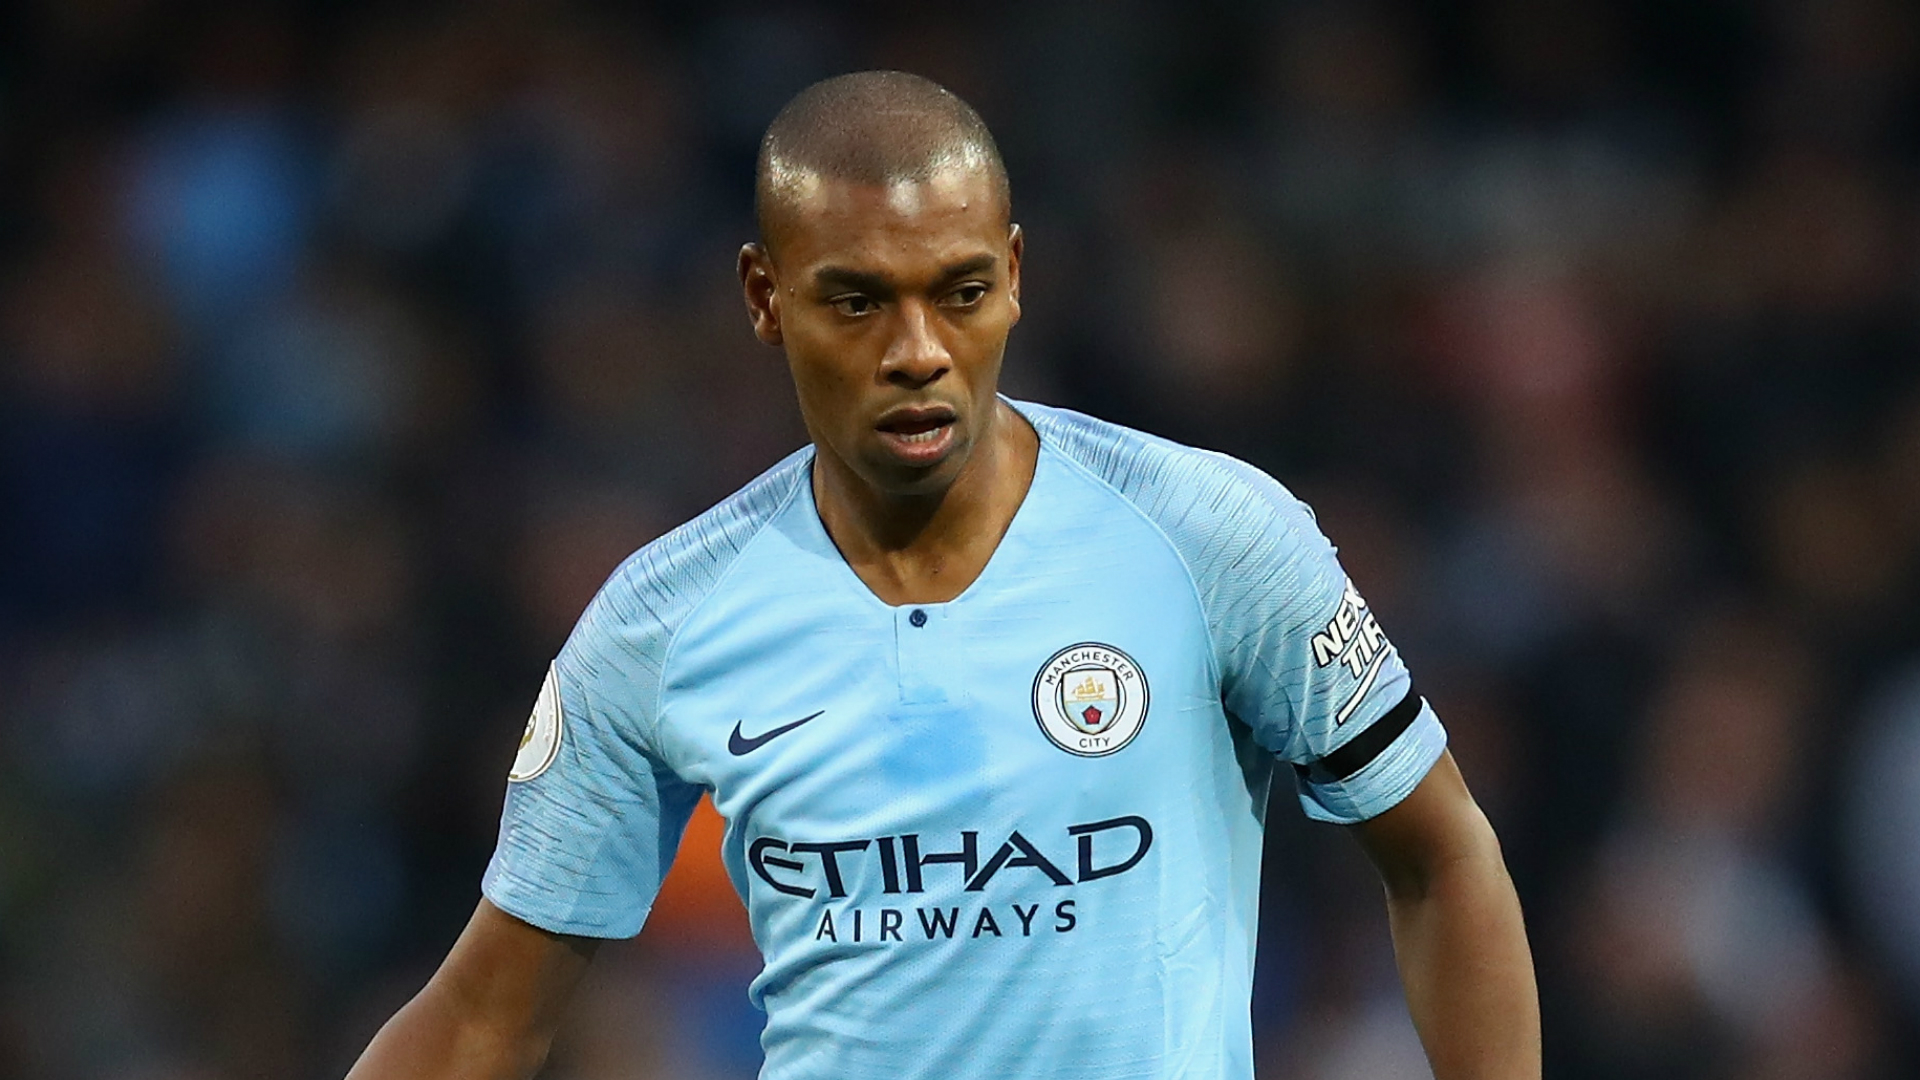 Guardiola waits on Fernandinho as De Bruyne remains out